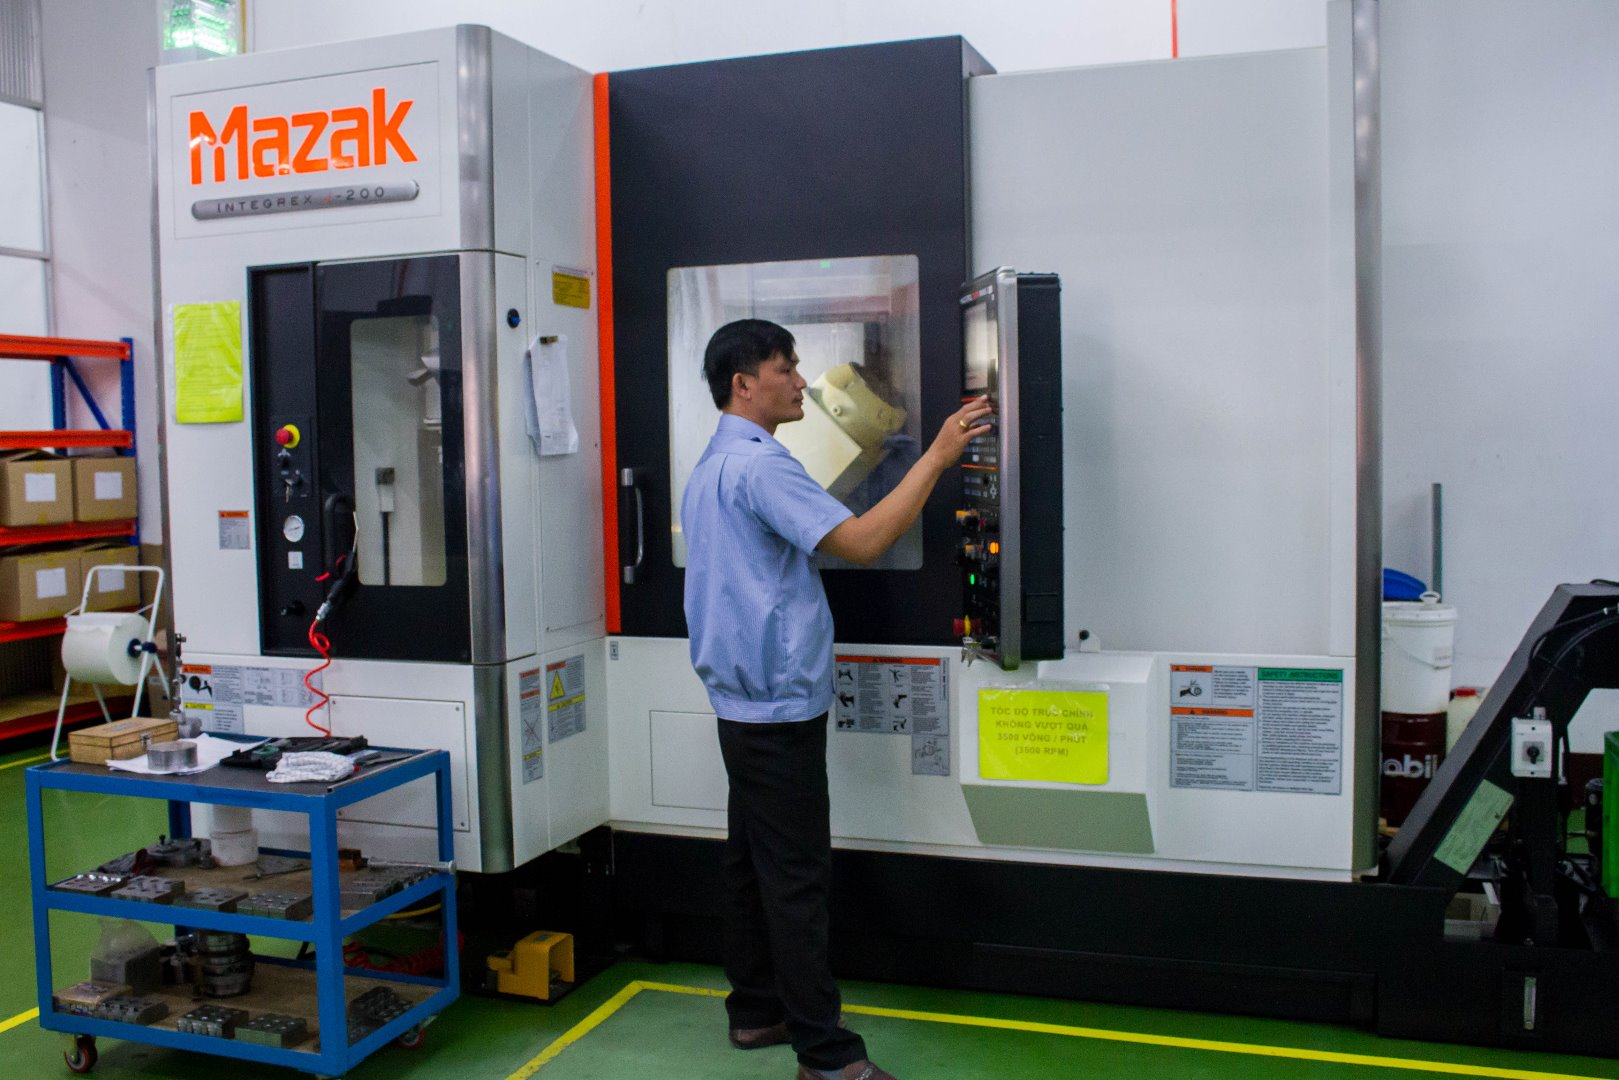 Mazak Intergrex J200 (4+1 Axis)